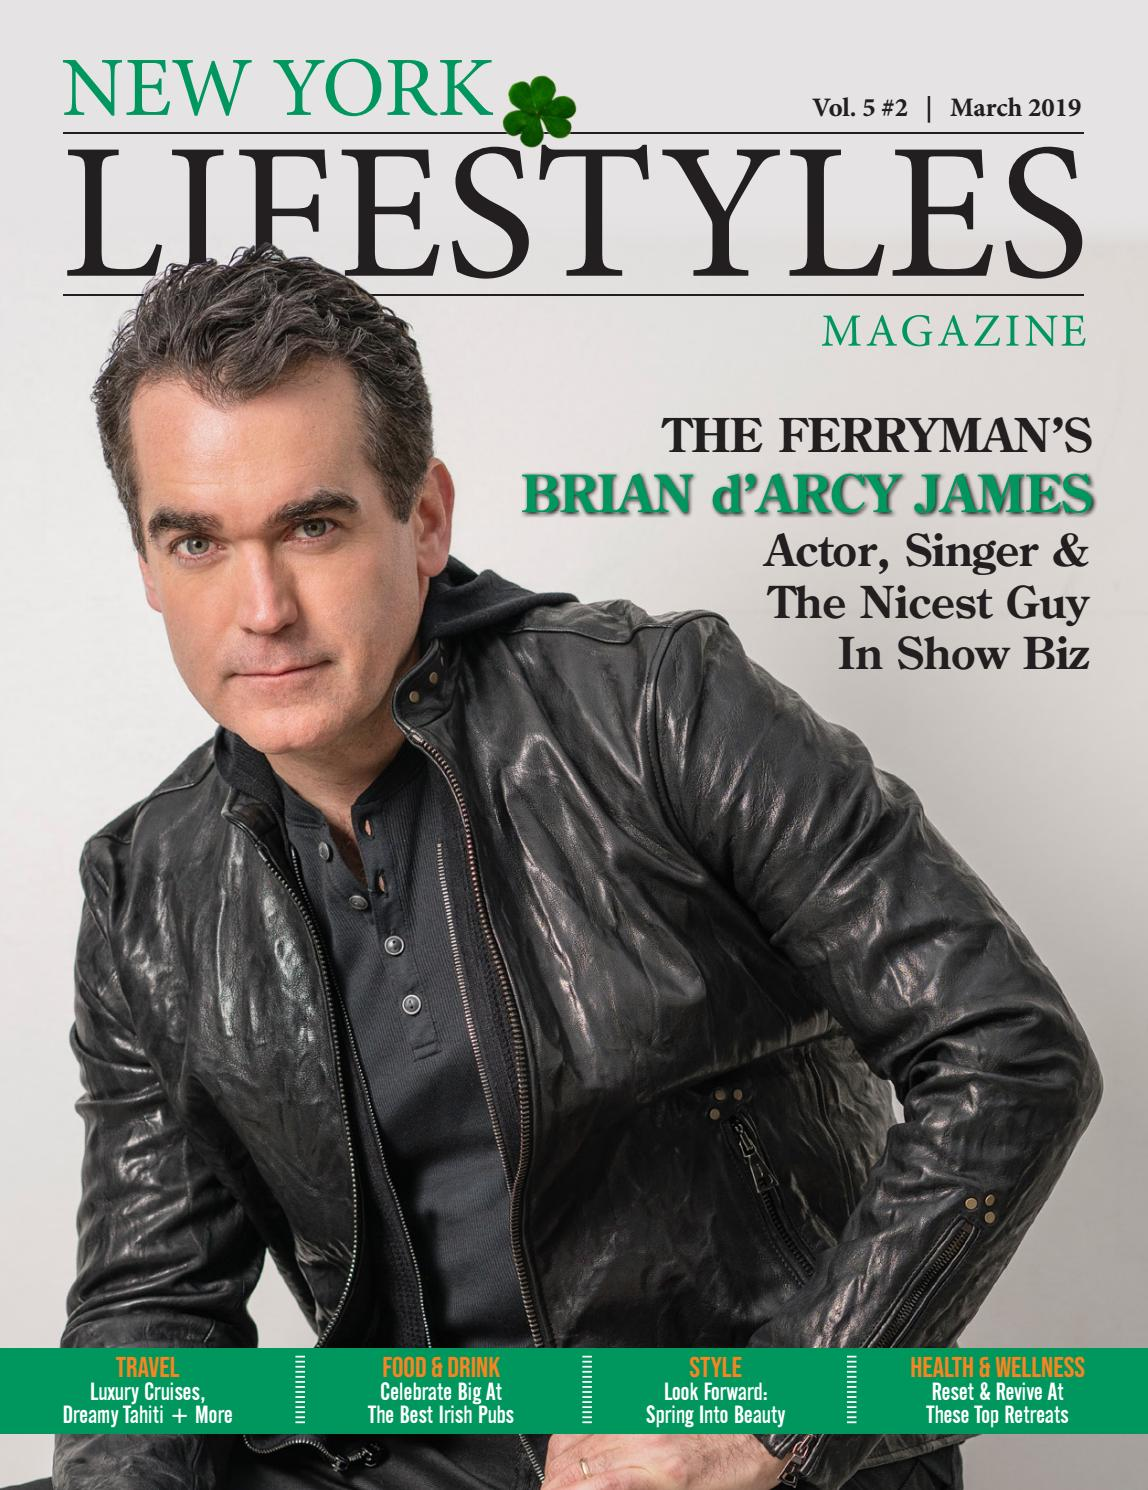 a53402e2a46e New York Lifestyles Magazine - March 2019 by New York Lifestyles Magazine -  issuu